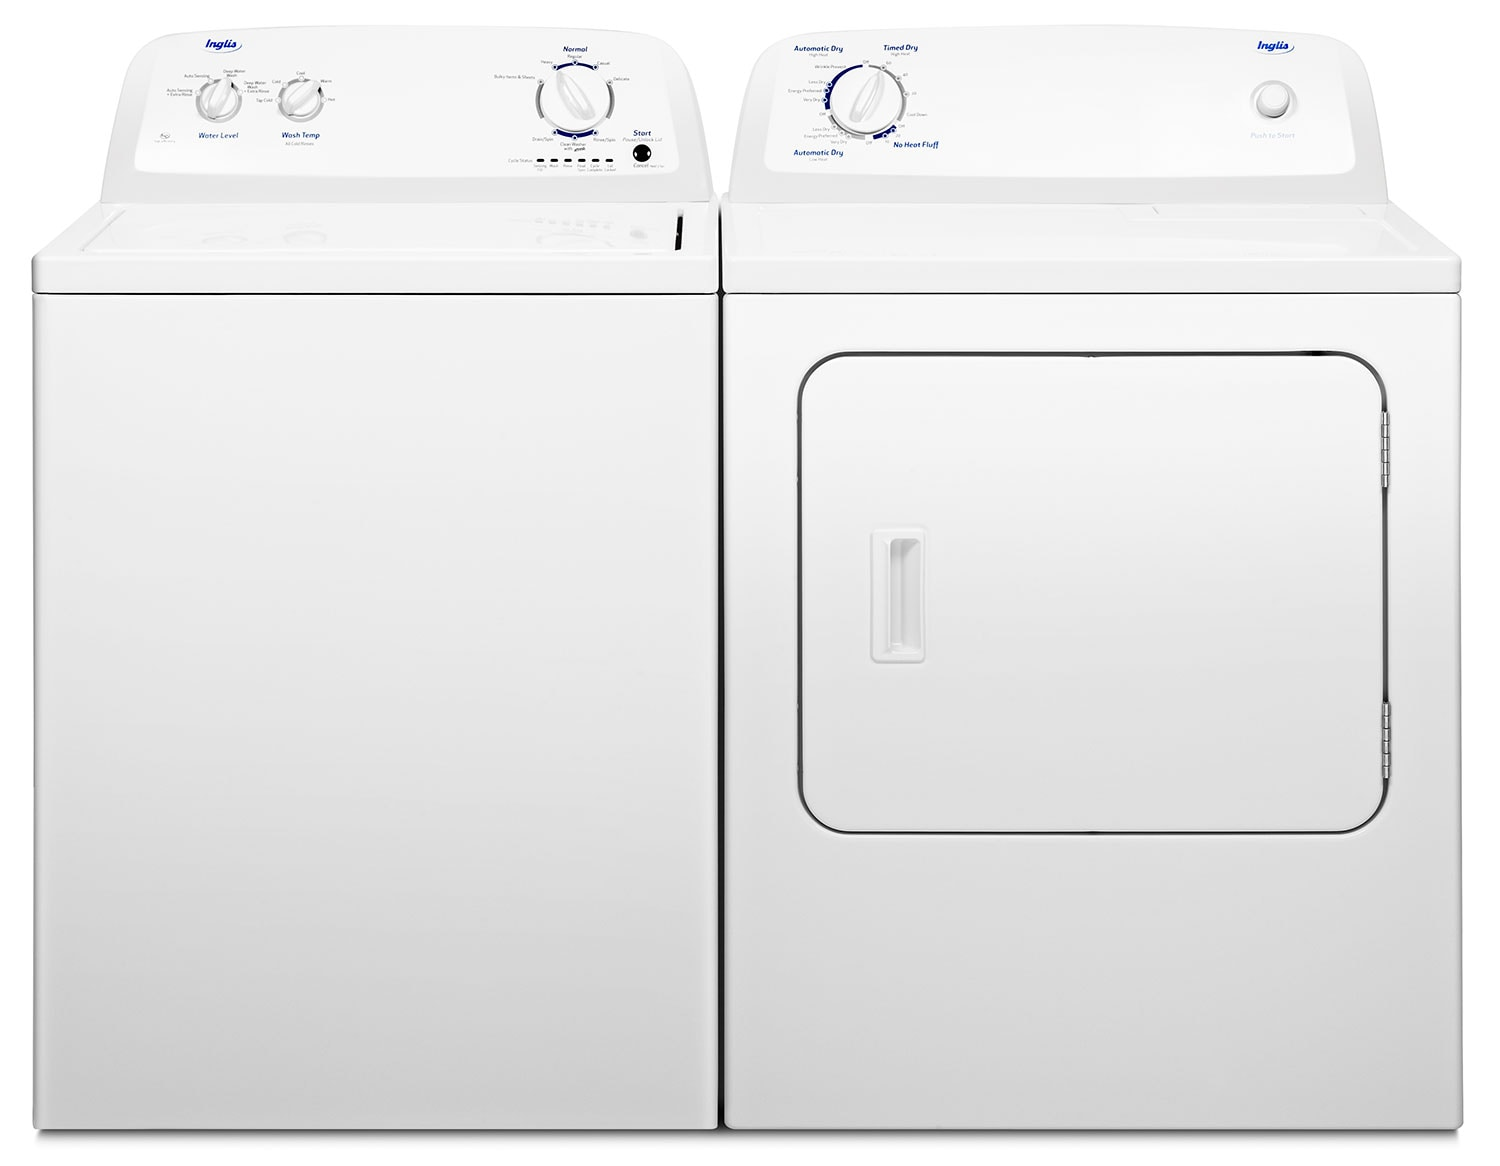 Inglis 4.0 Cu. Ft. Top-Load Washer and 6.5 Cu. Ft. Electric Dryer – White